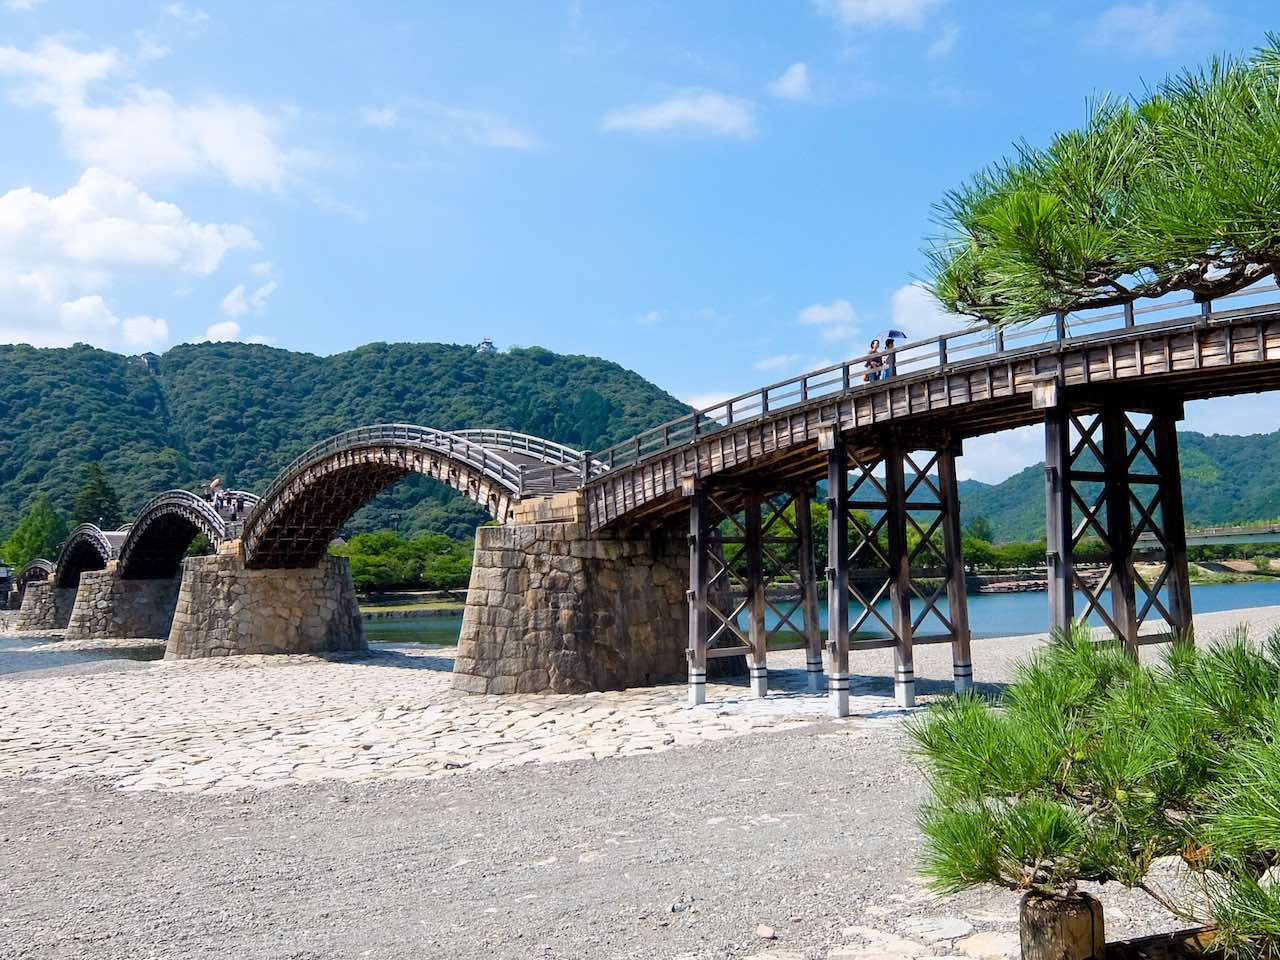 Kintai Bridge with Castle on Hill